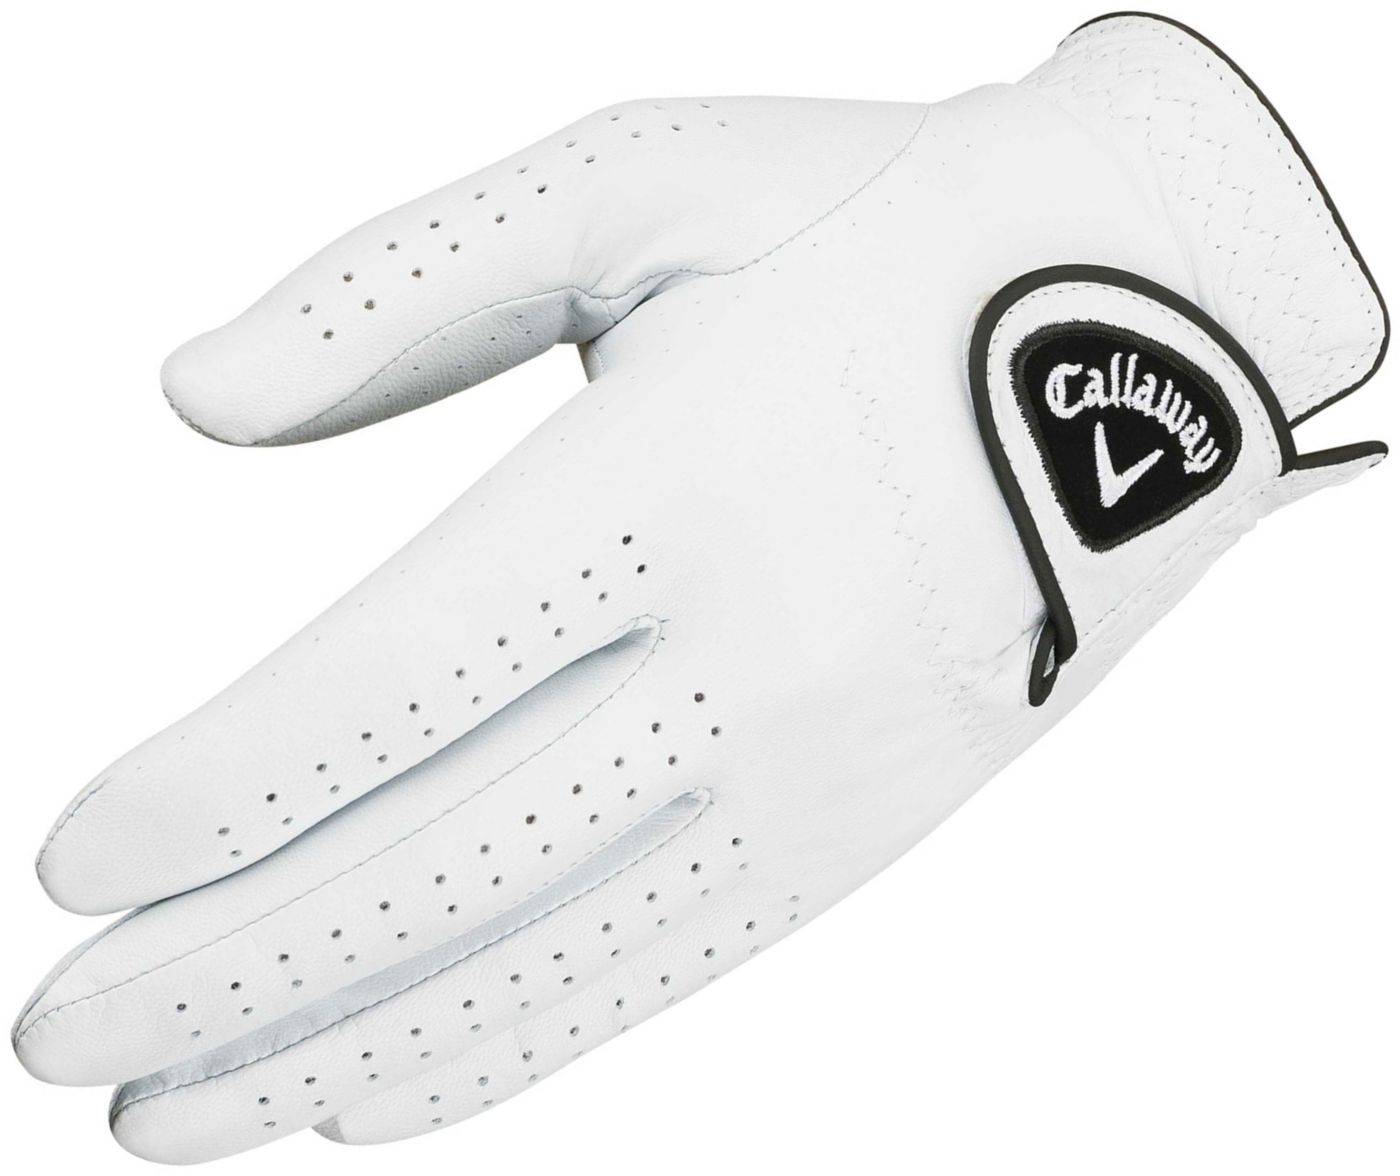 Callaway Women's Dawn Patrol Golf Glove